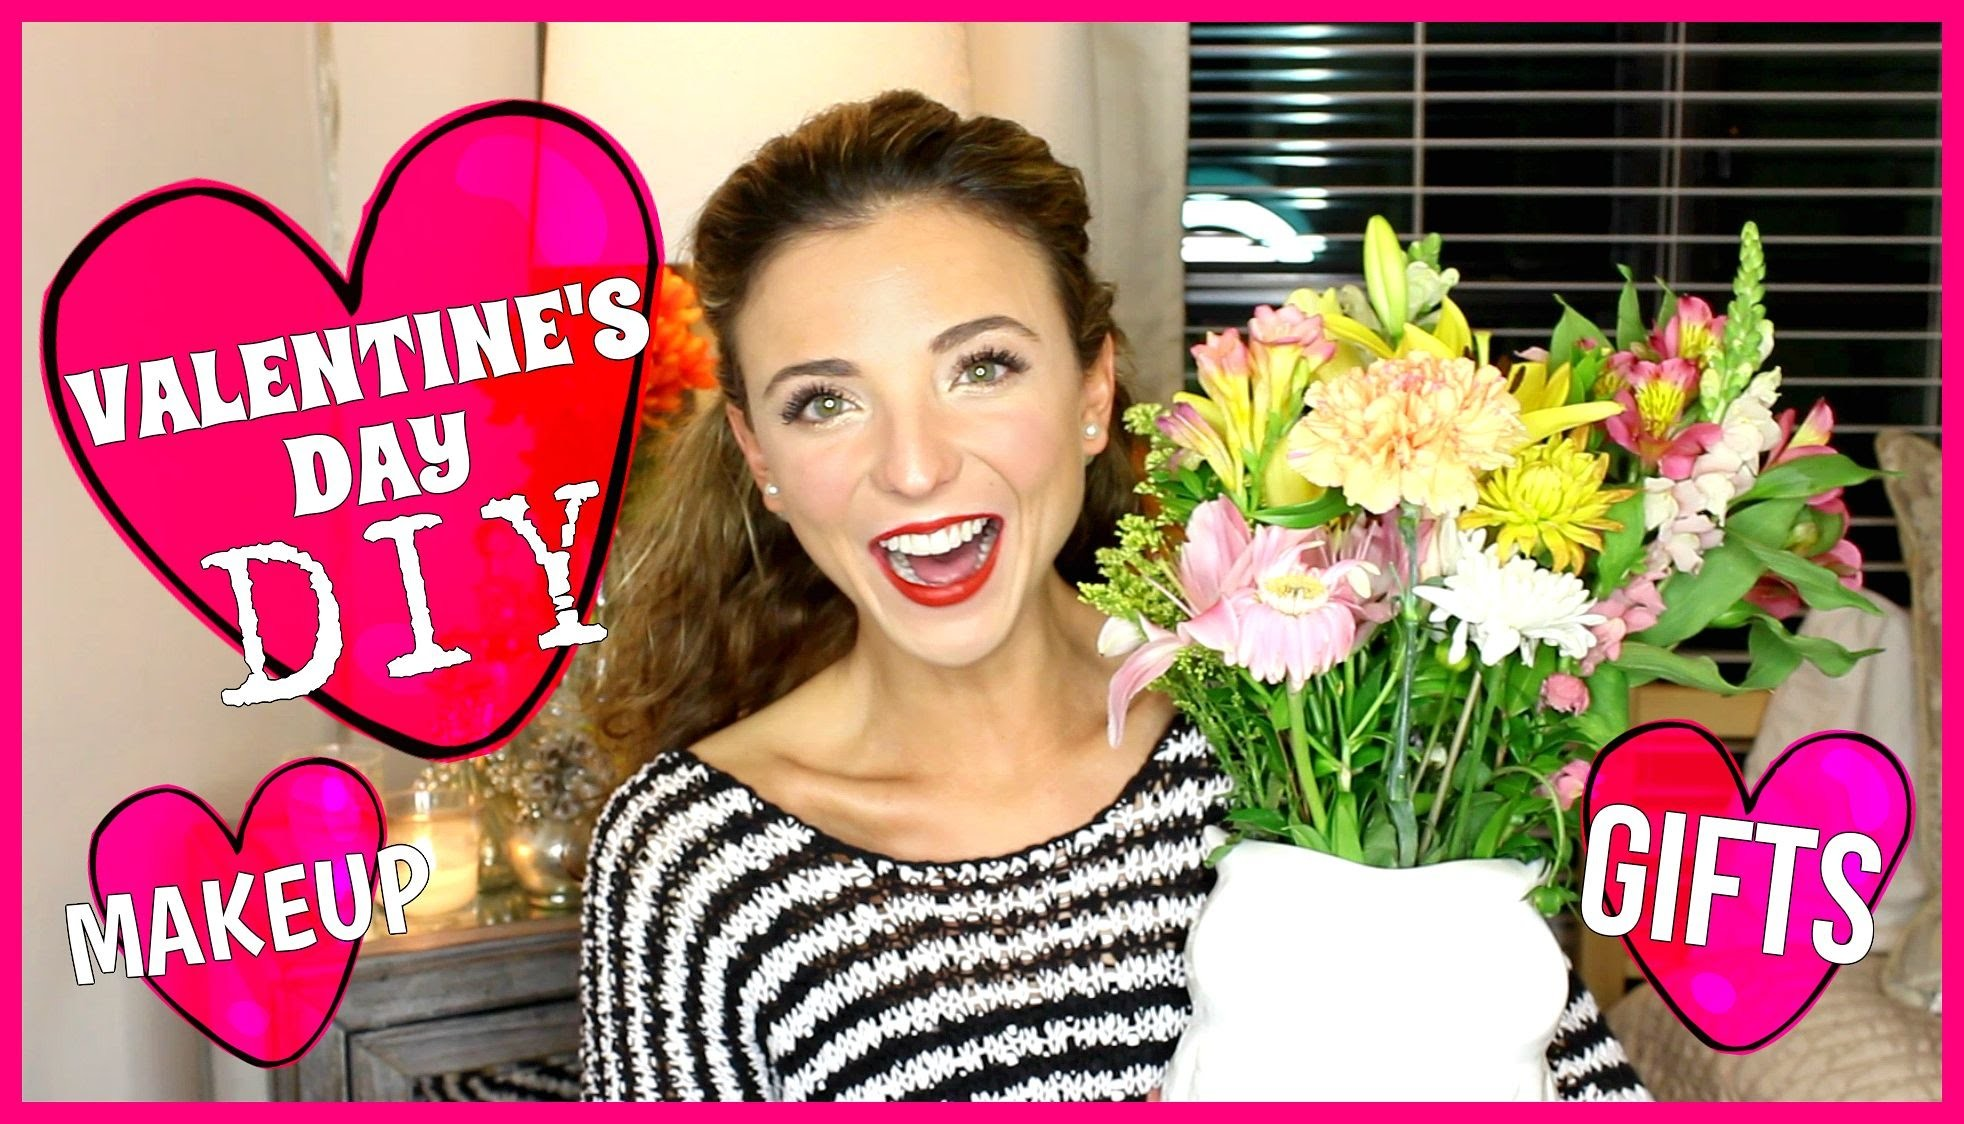 VALENTINE'S DAY IDEAS, DIY, GIFTS, & MAKEUP!